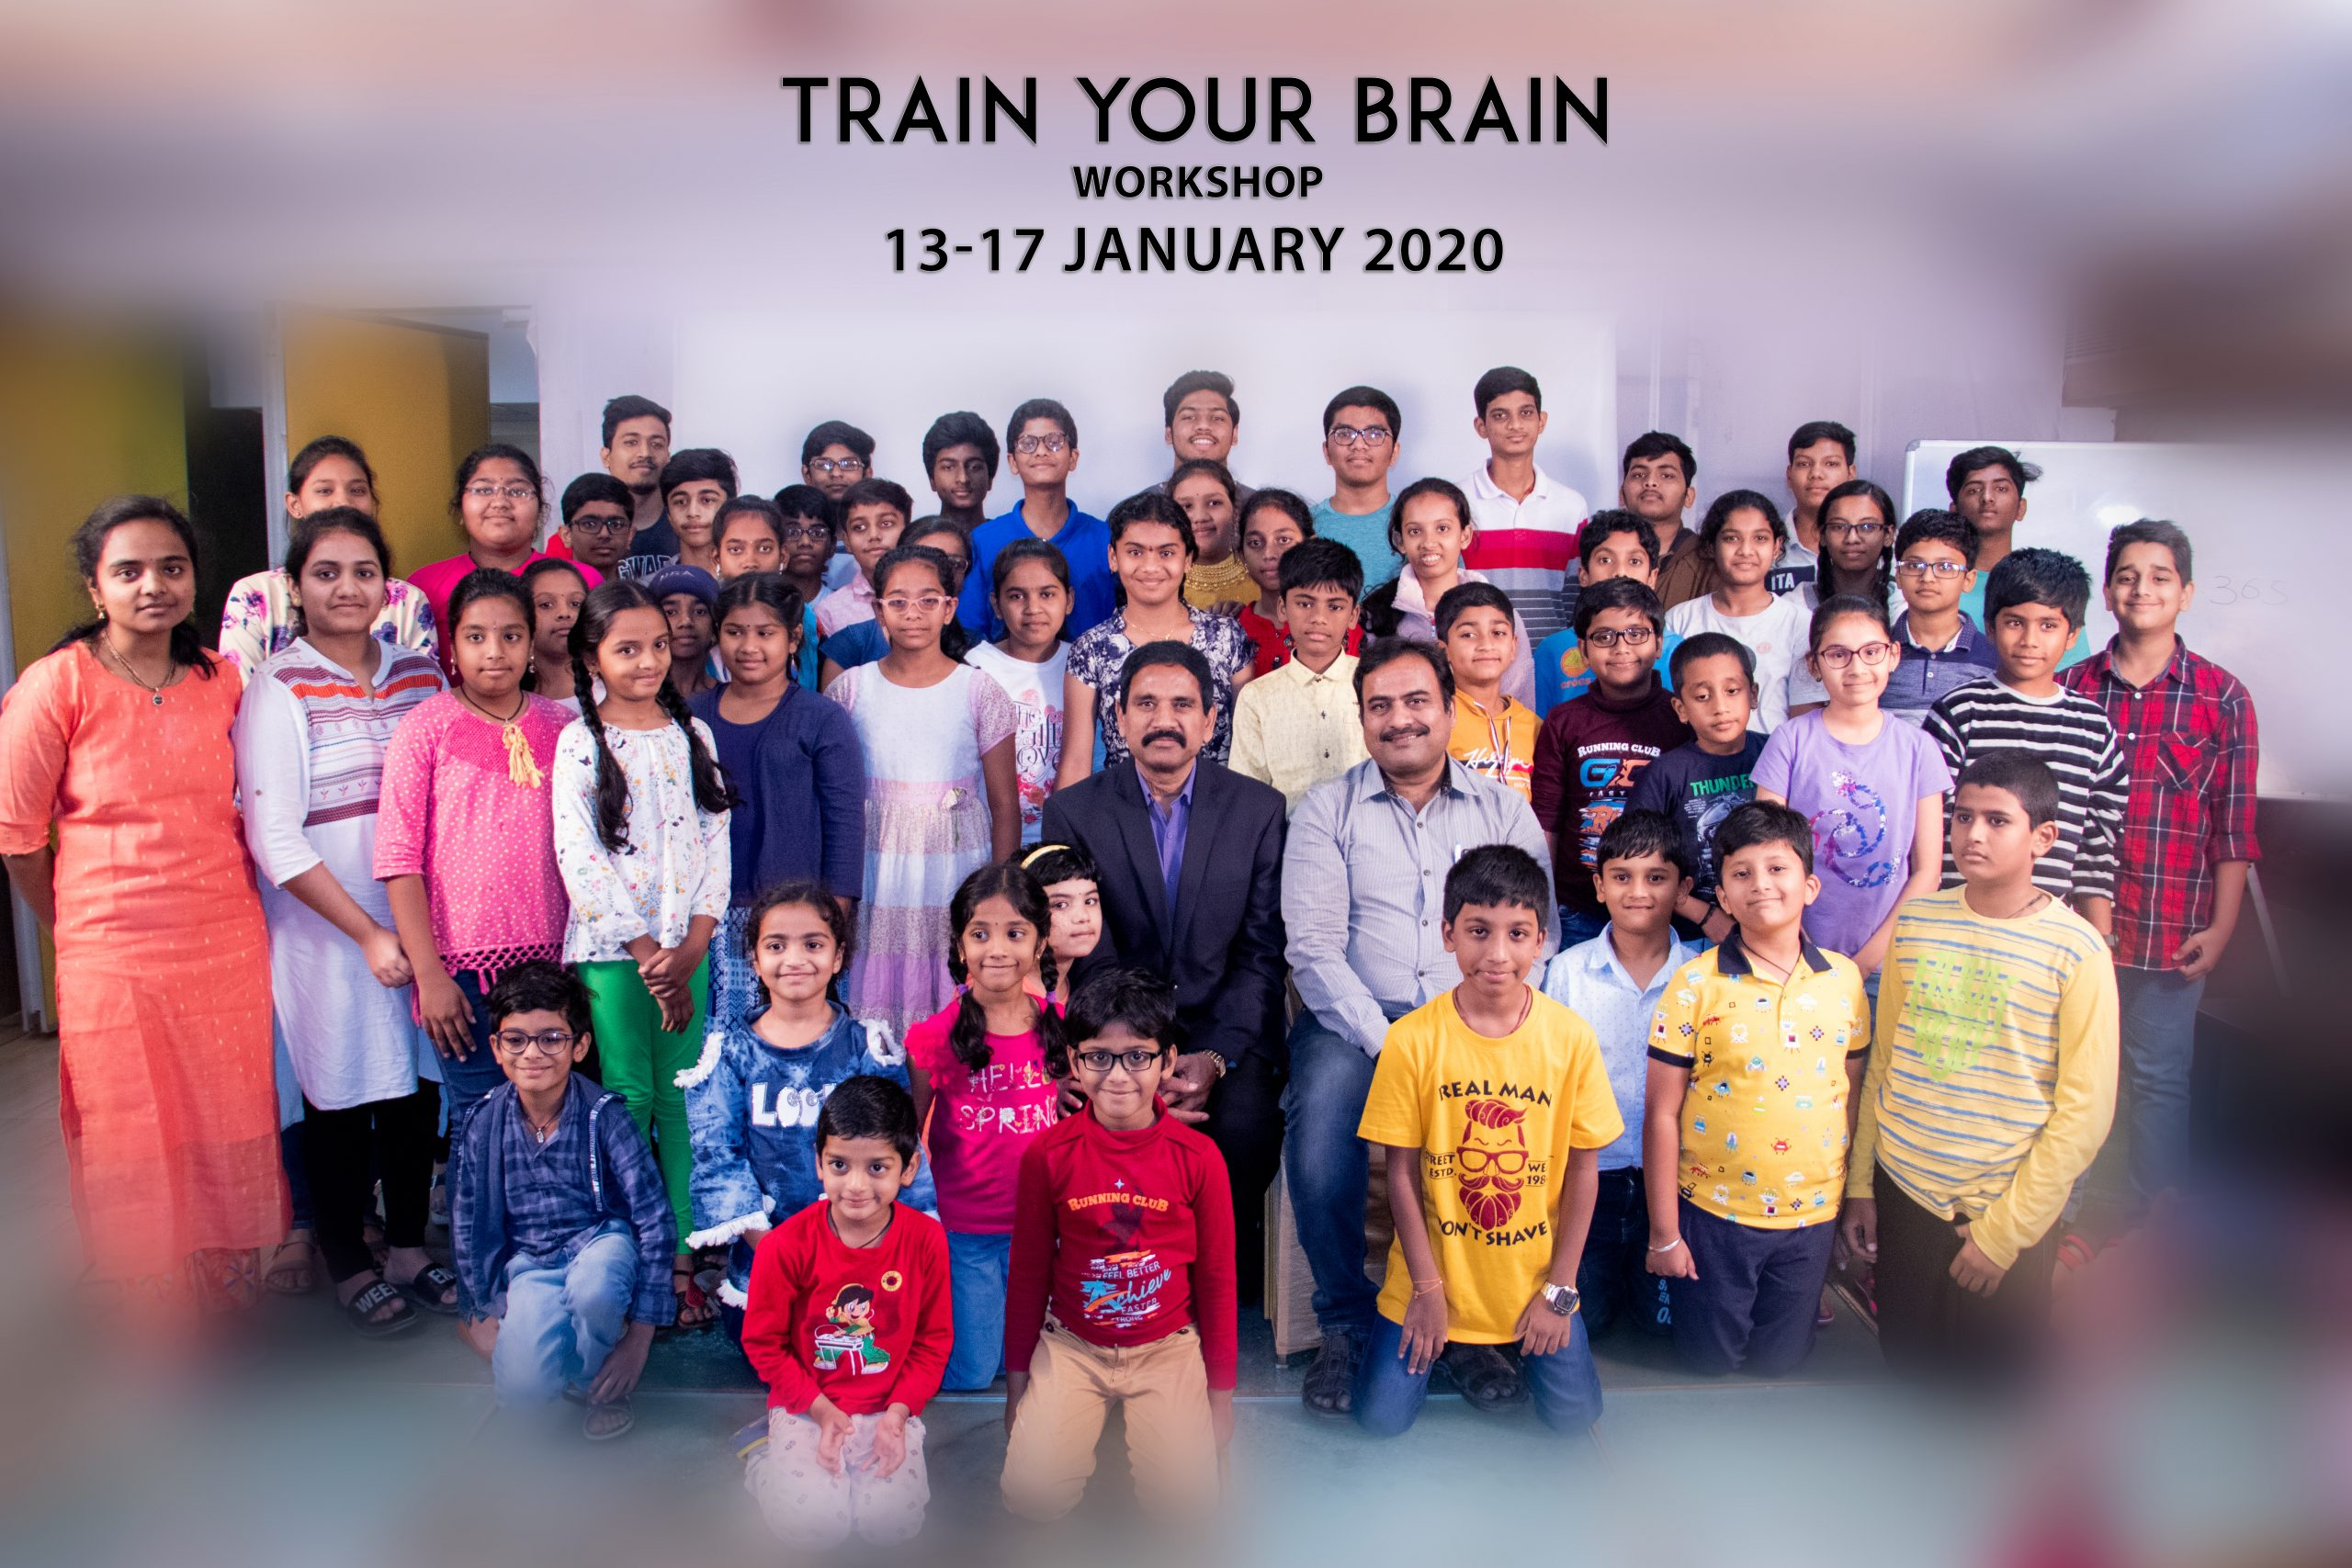 Train your brain workshop group photo